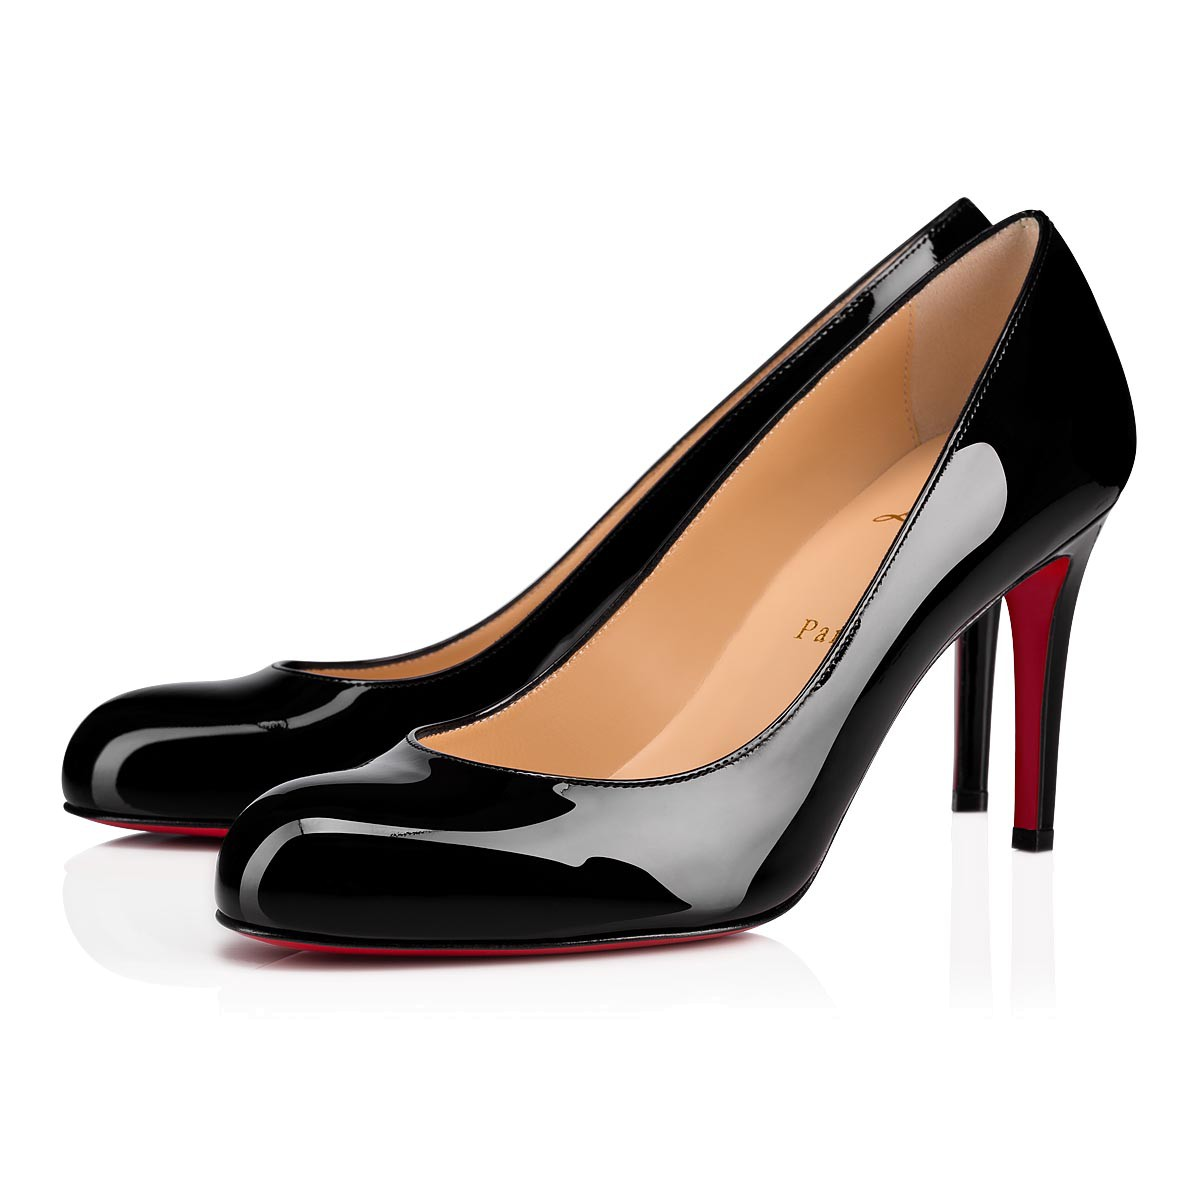 louboutin chaussures femme prix